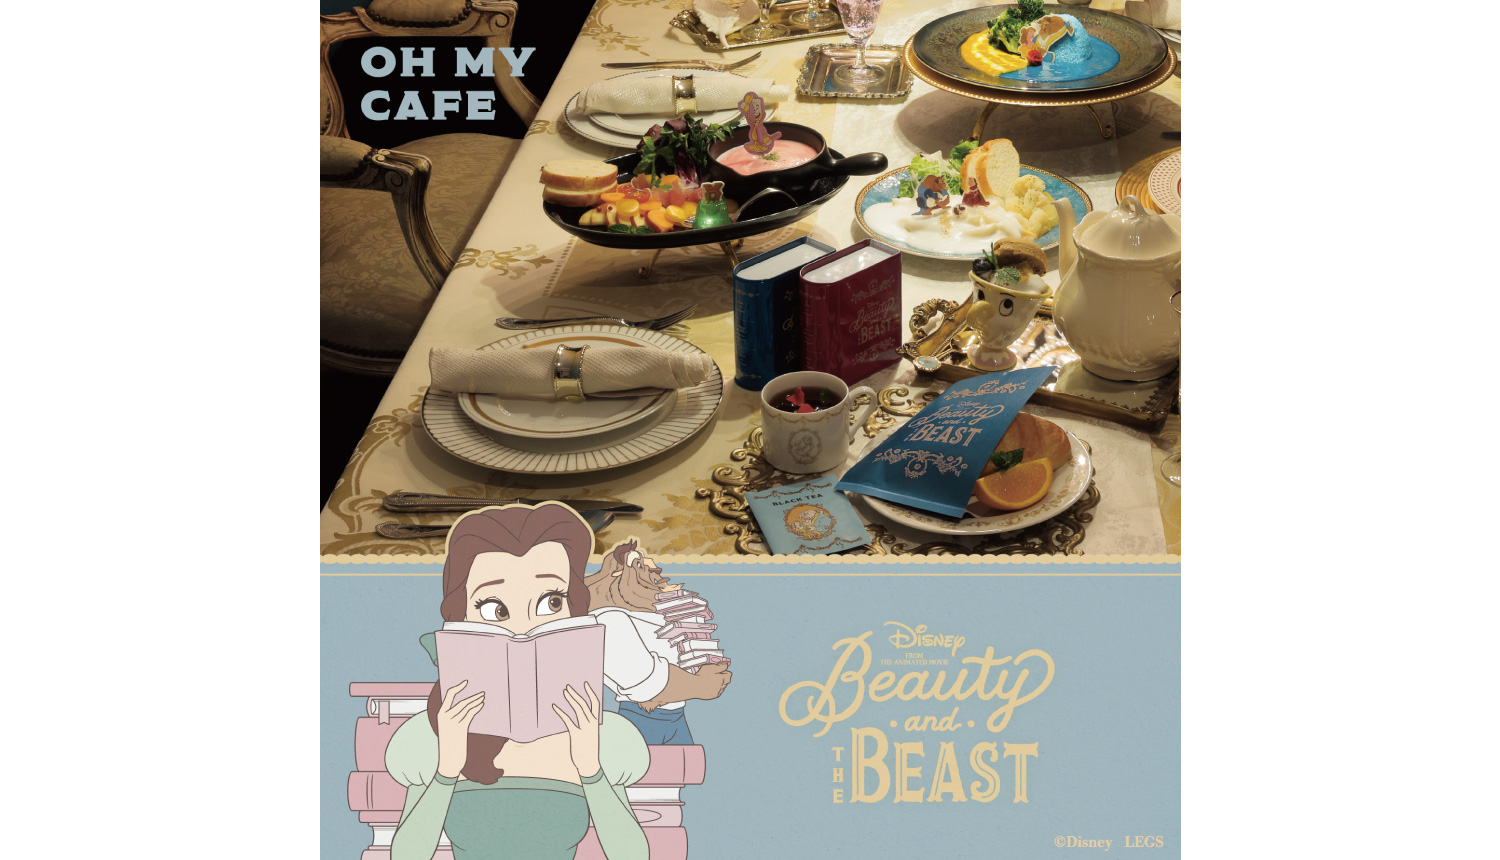 beauty-and-the-beast-cafe-美女與野獸-咖啡店美女と野獣-カフェ